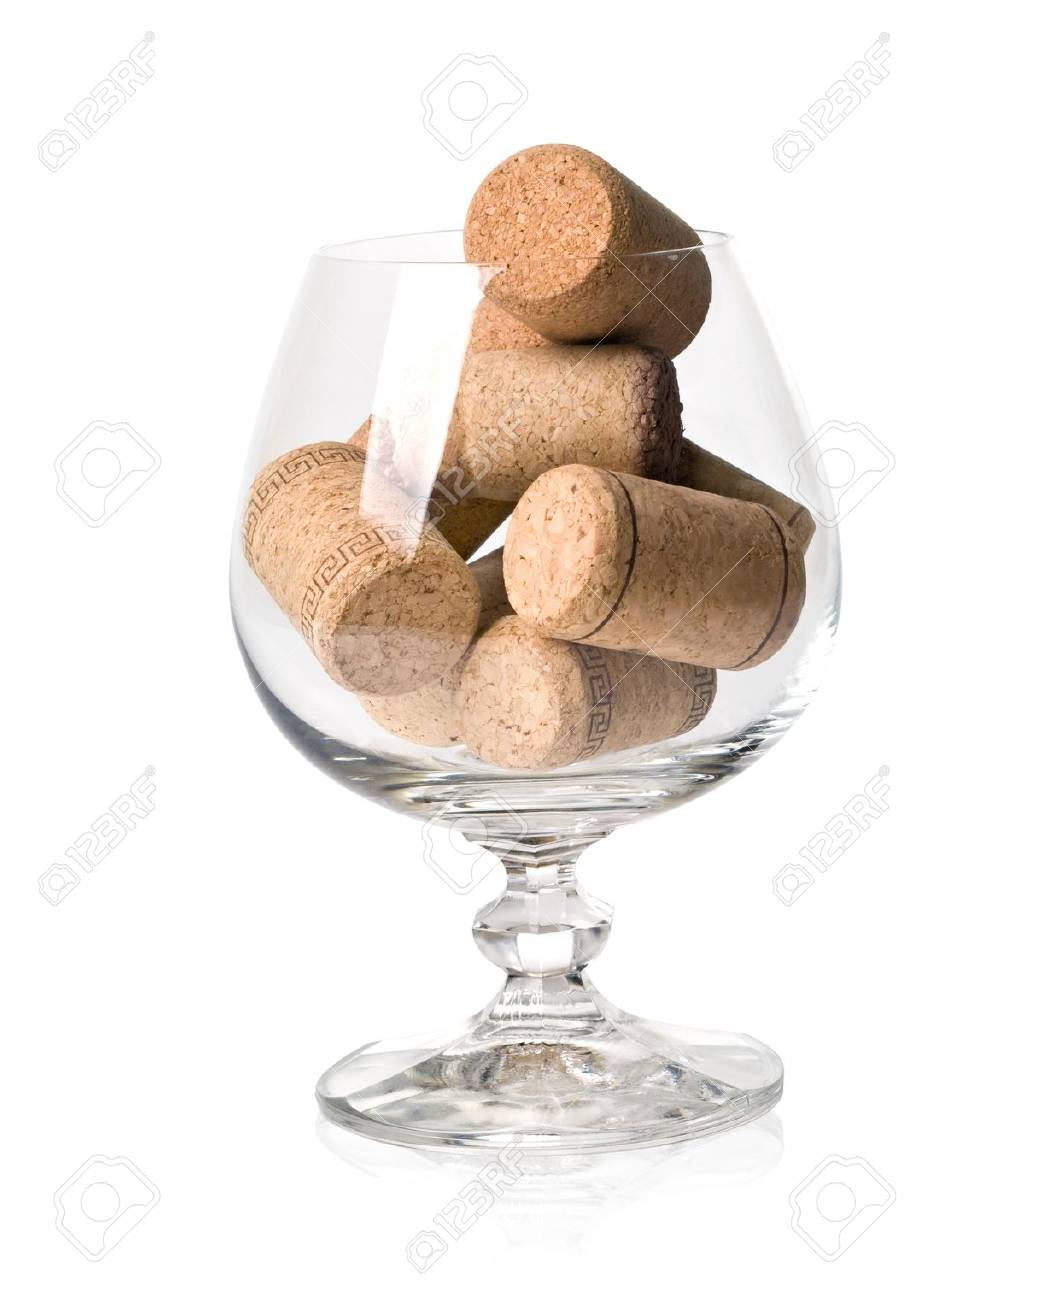 corks in the wine glass isolated on white background Stock Photo - 12248624